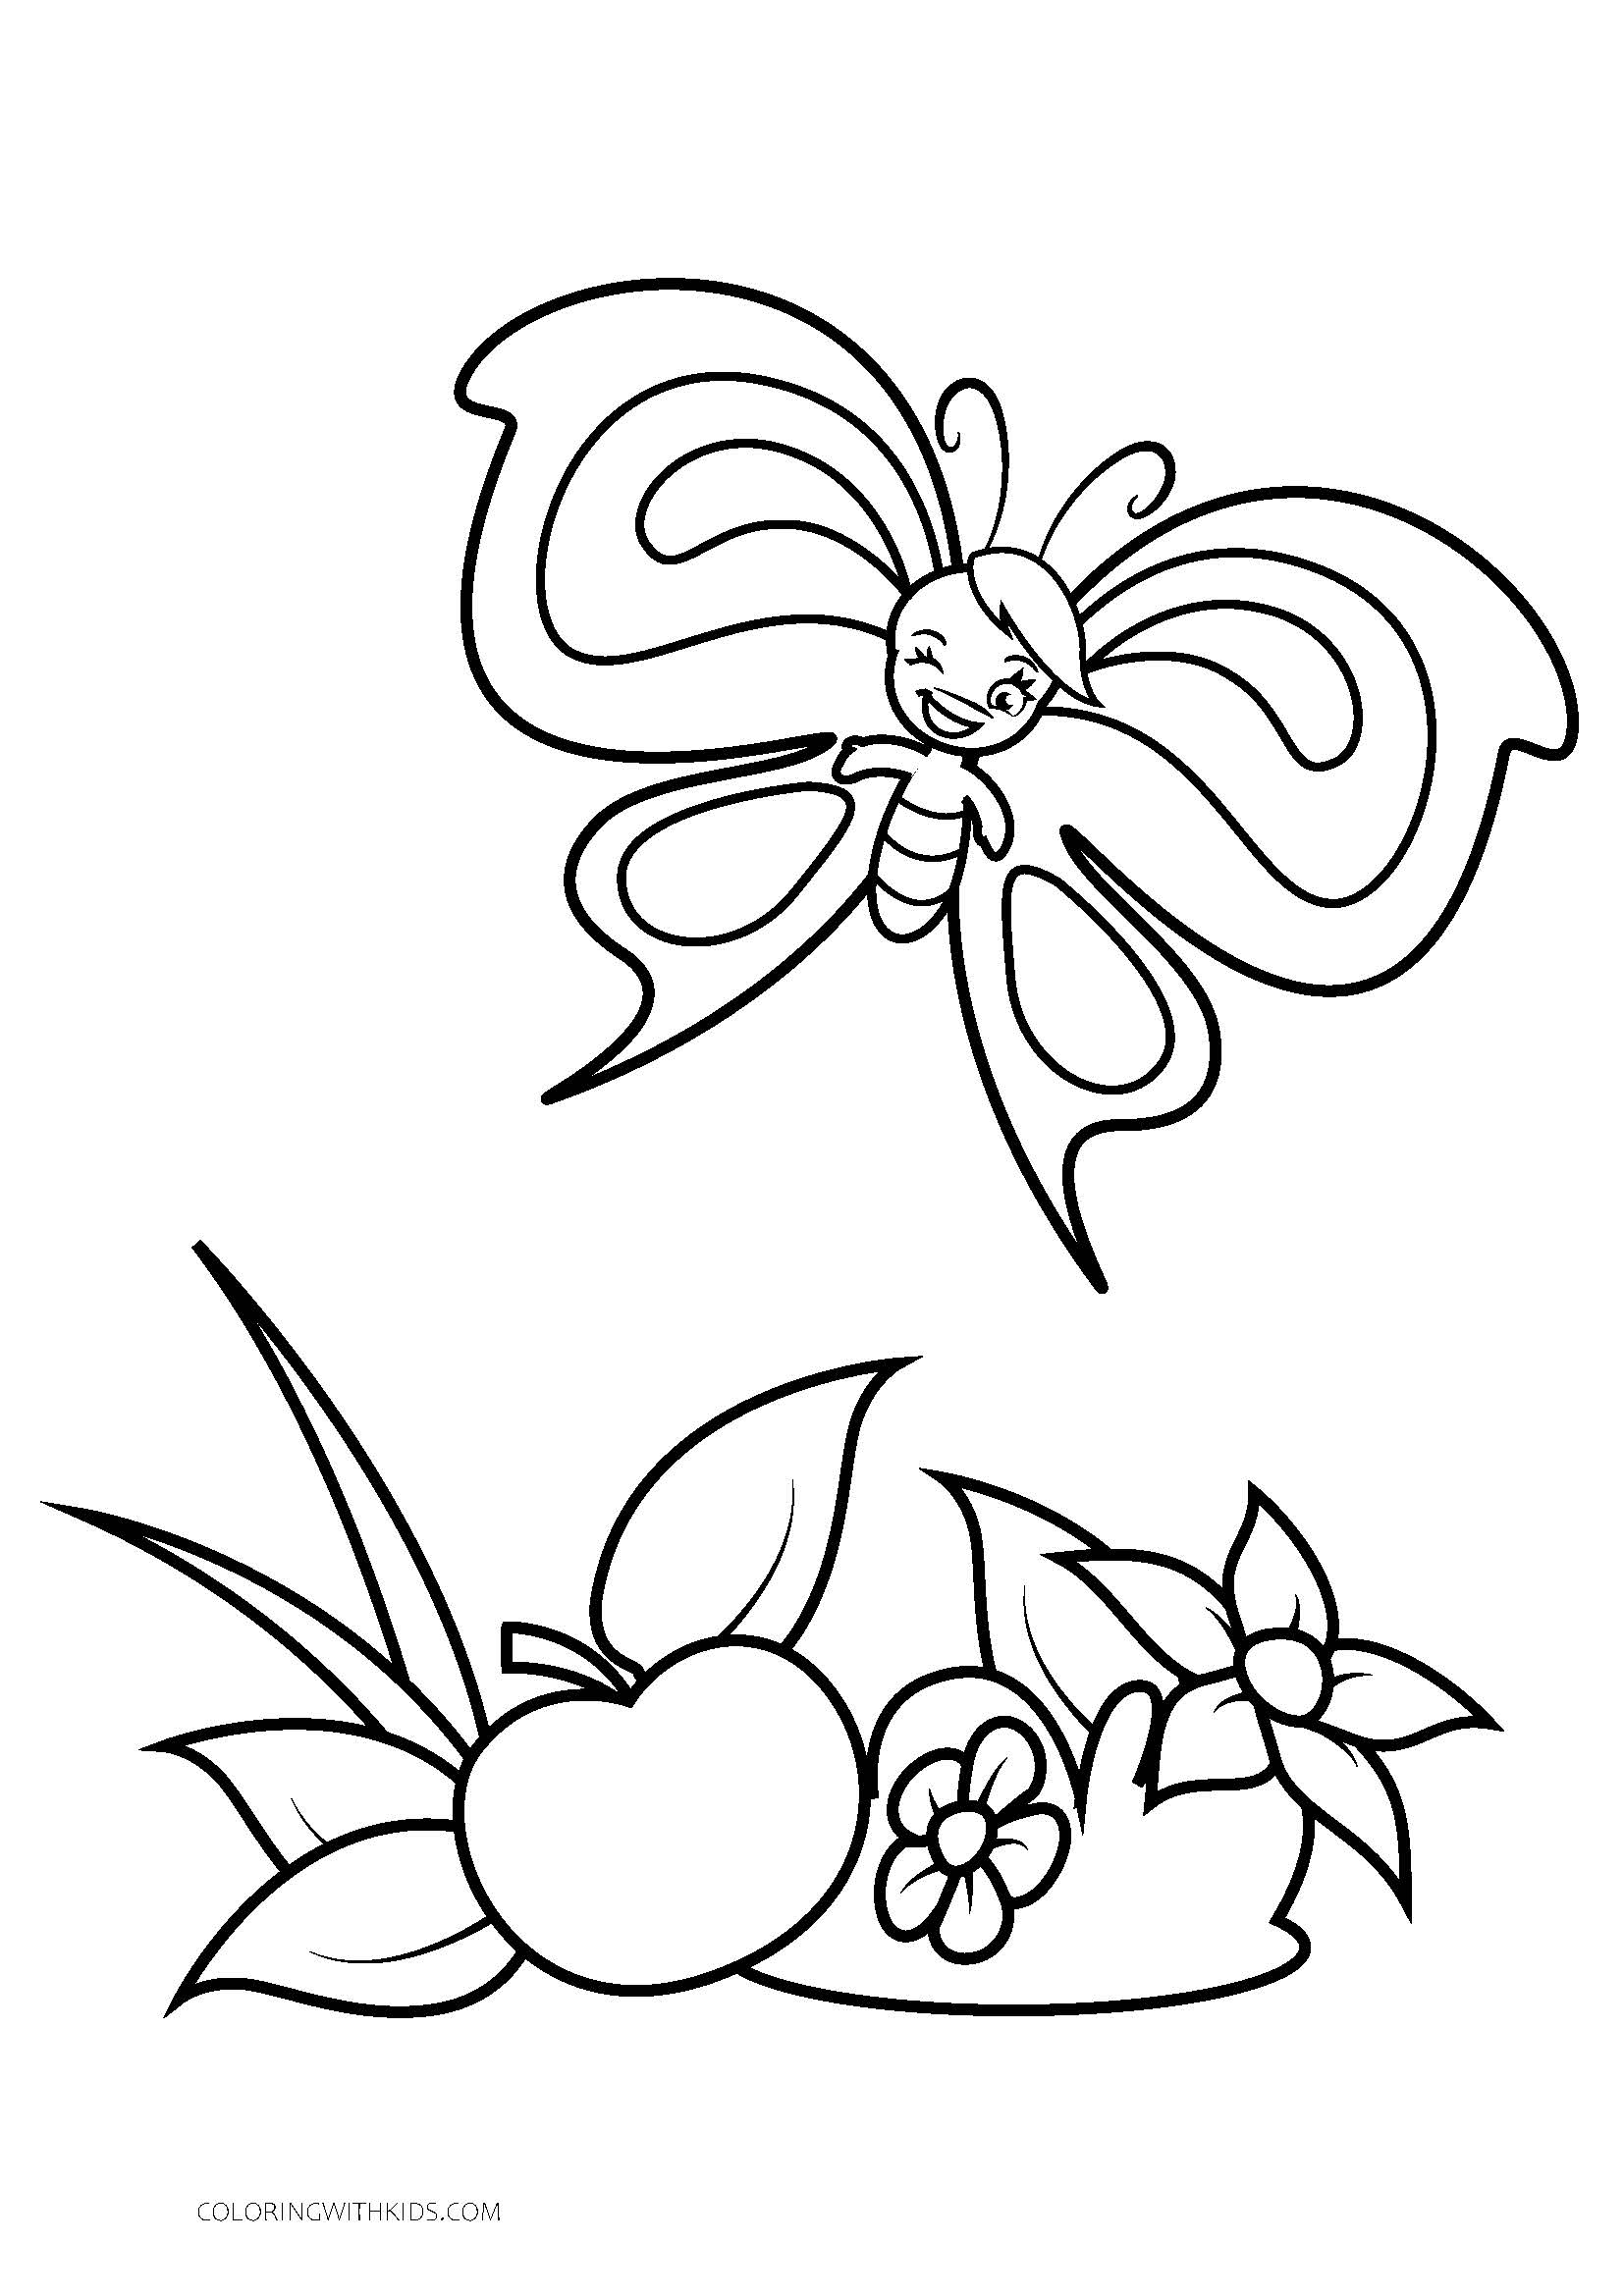 Winking cartoon butterfly flying over fruit coloring page